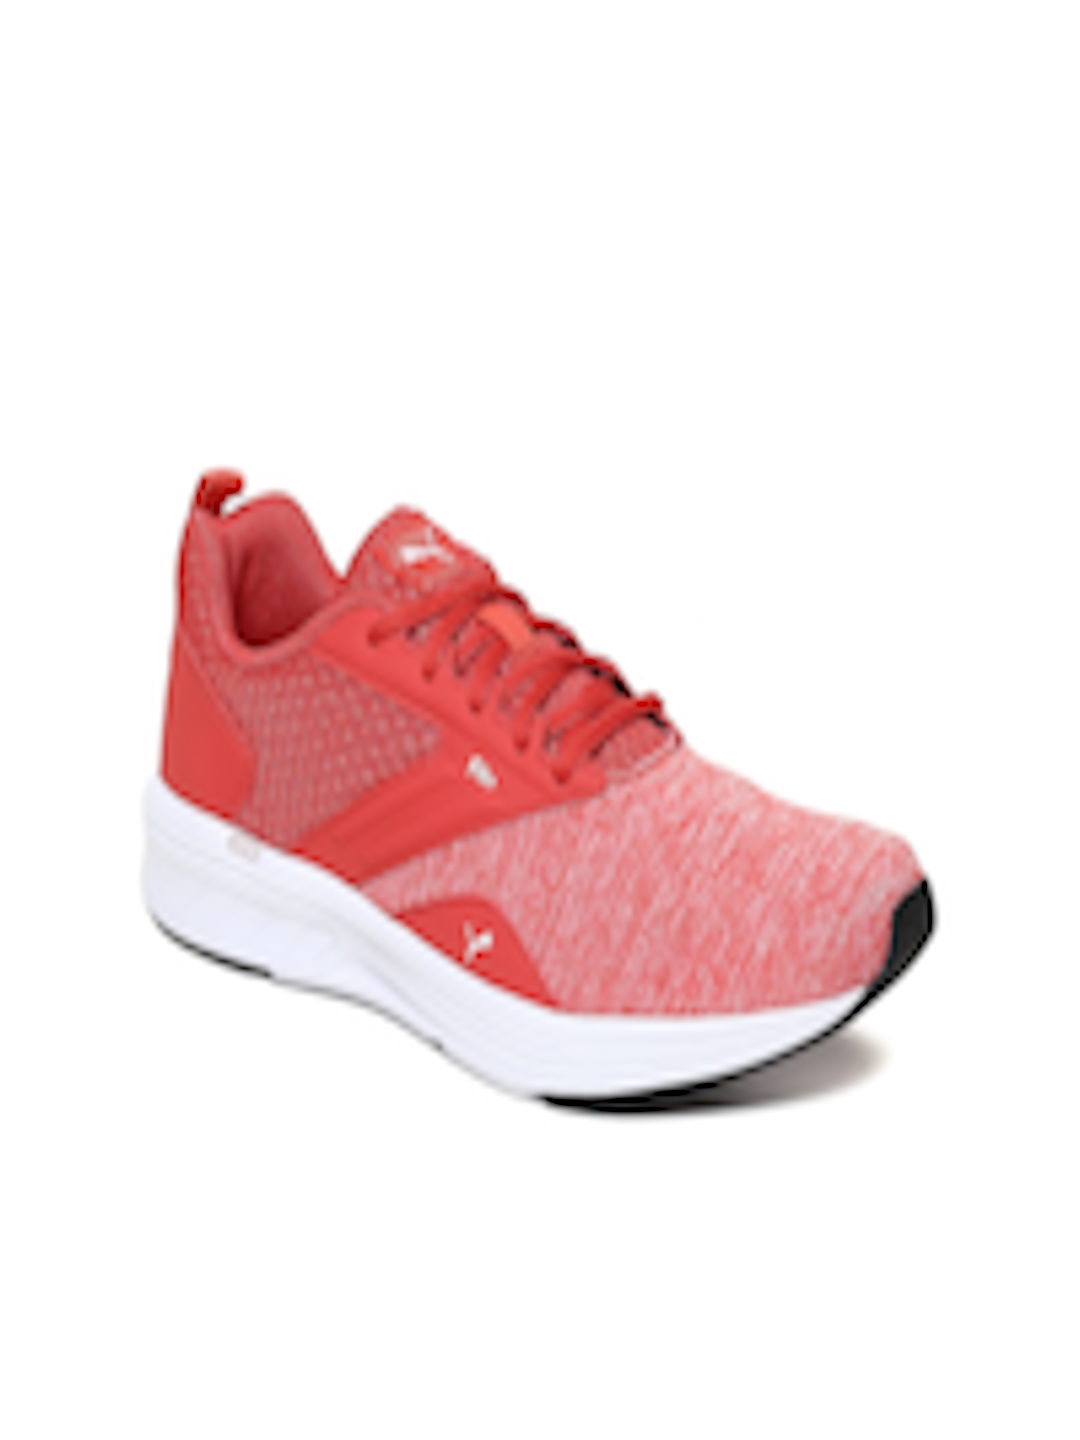 8f9c08886e39f0 Buy Puma Women Red NRGY Comet Running Shoes - Sports Shoes for Women  8476993